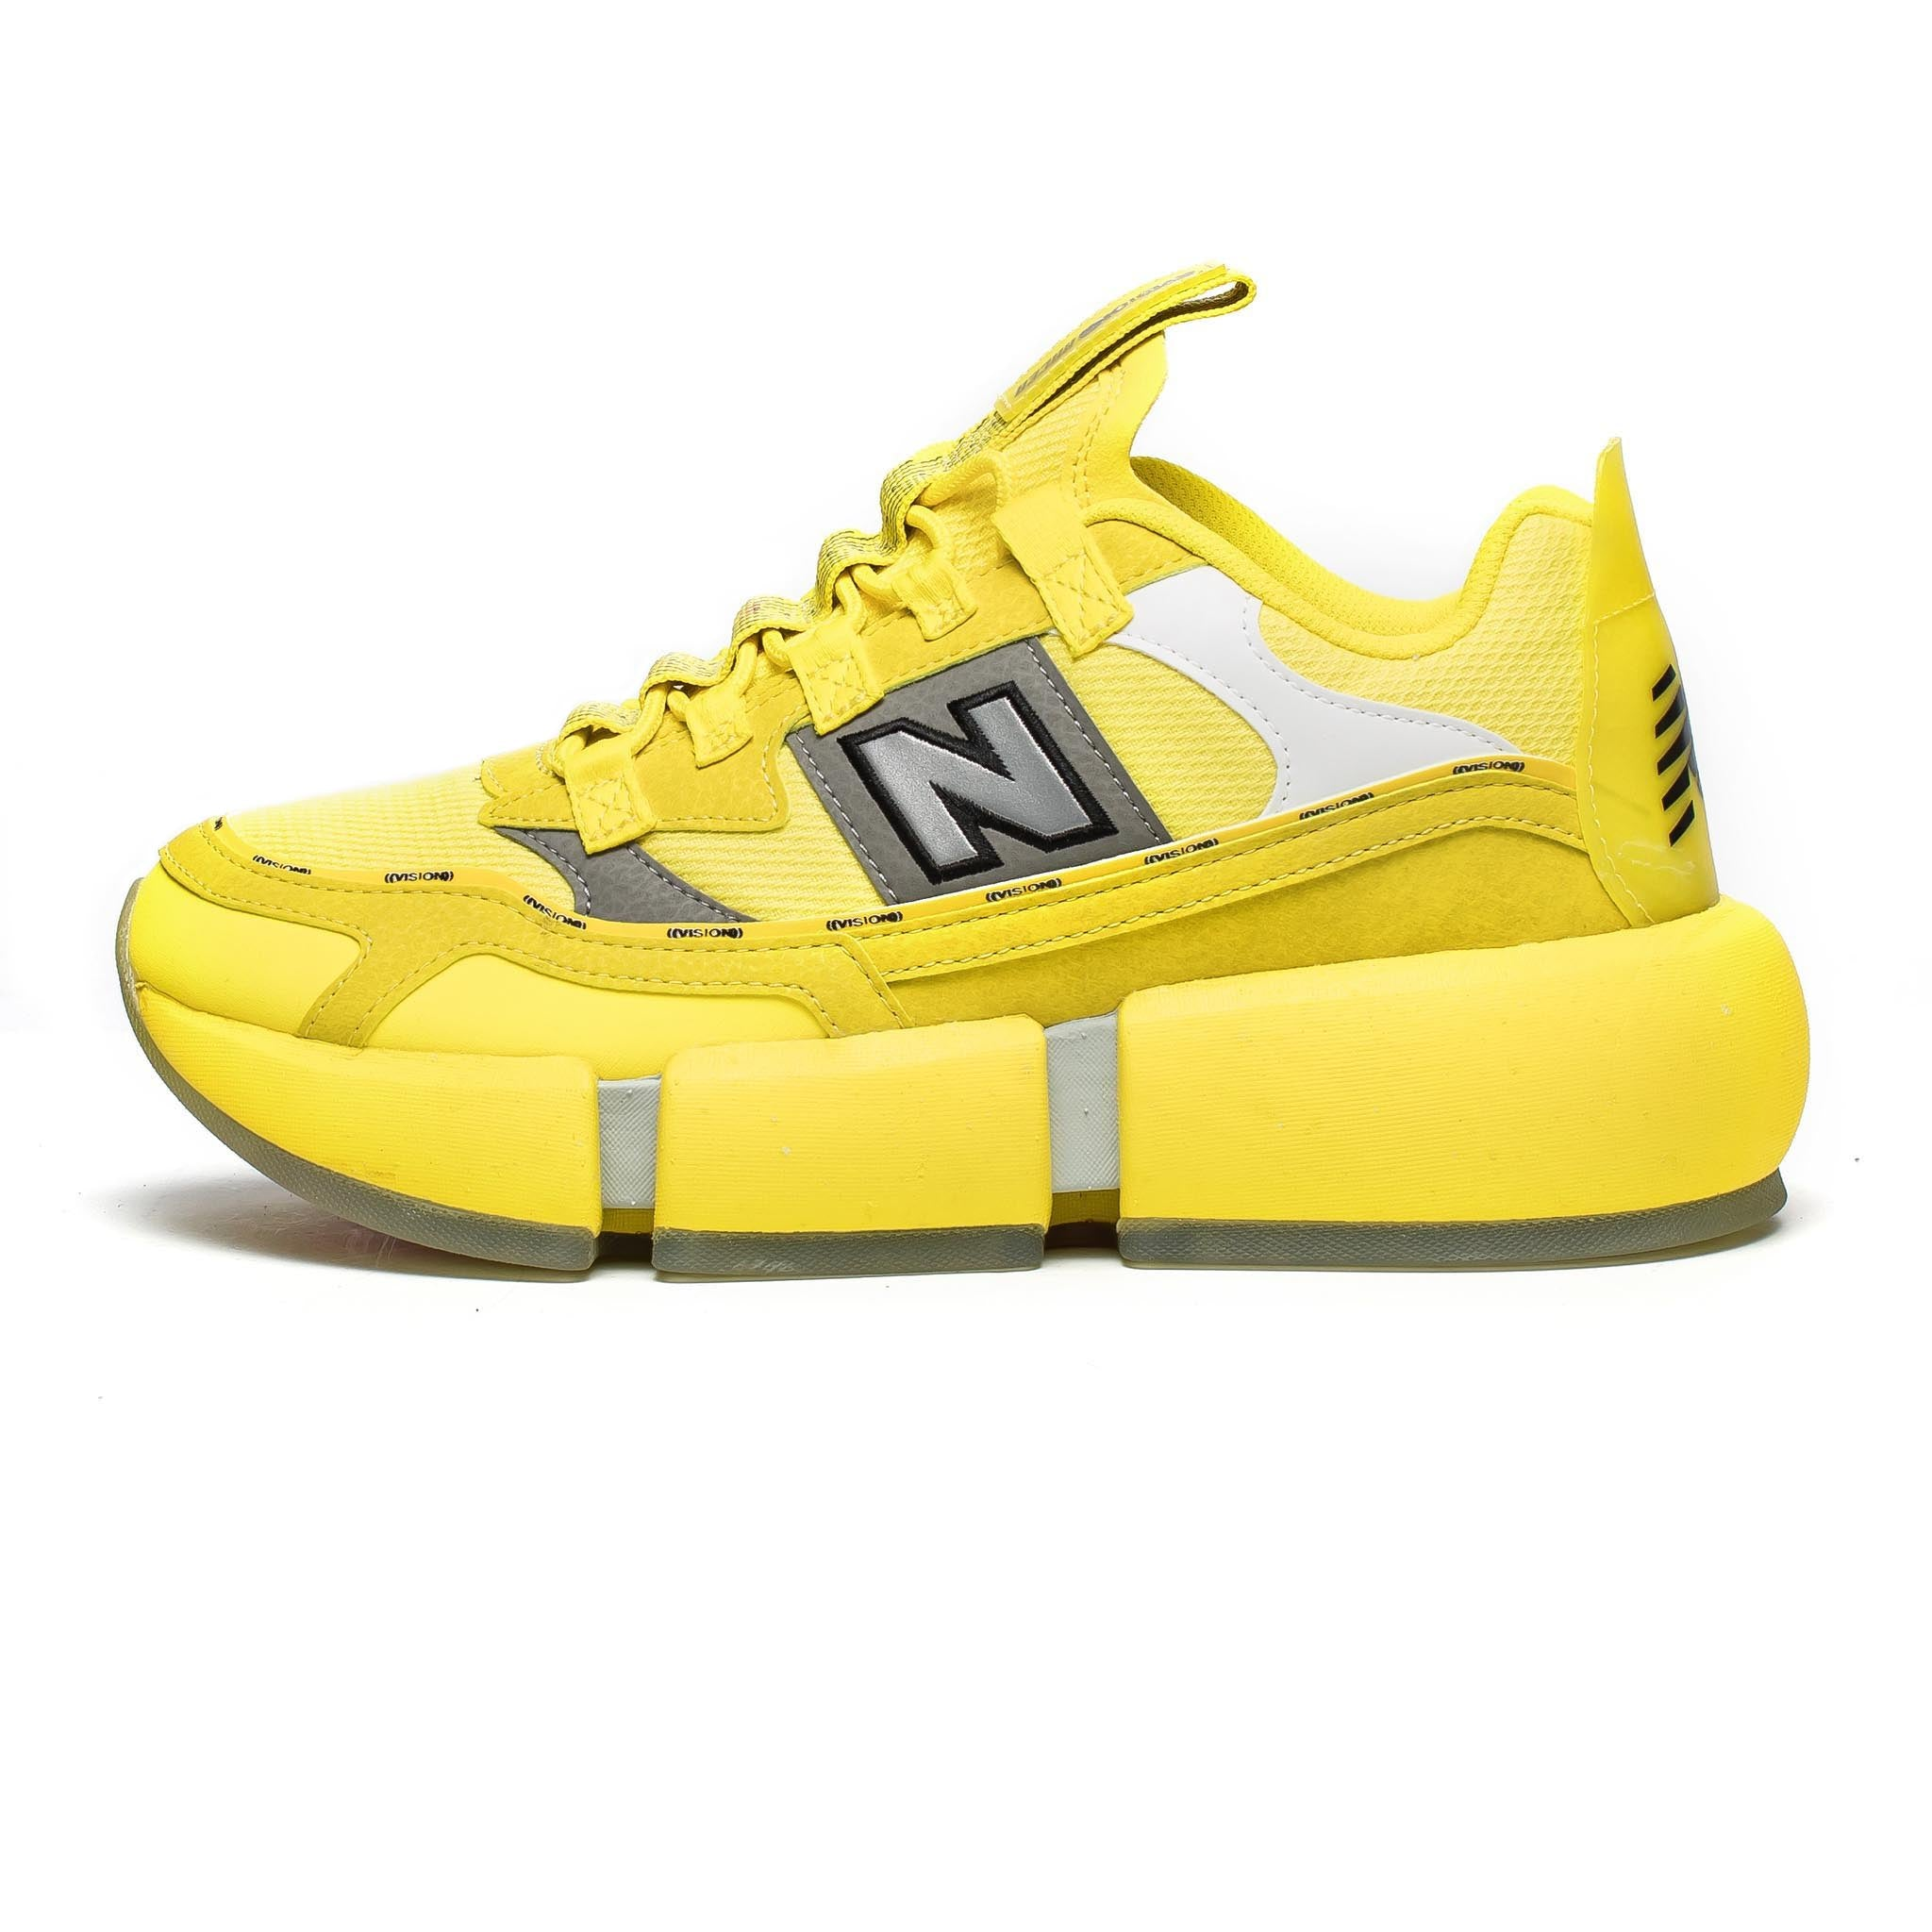 New Balance x Jaden Smith Vision Racer MSVRCJSB 'Sunflower Yellow'